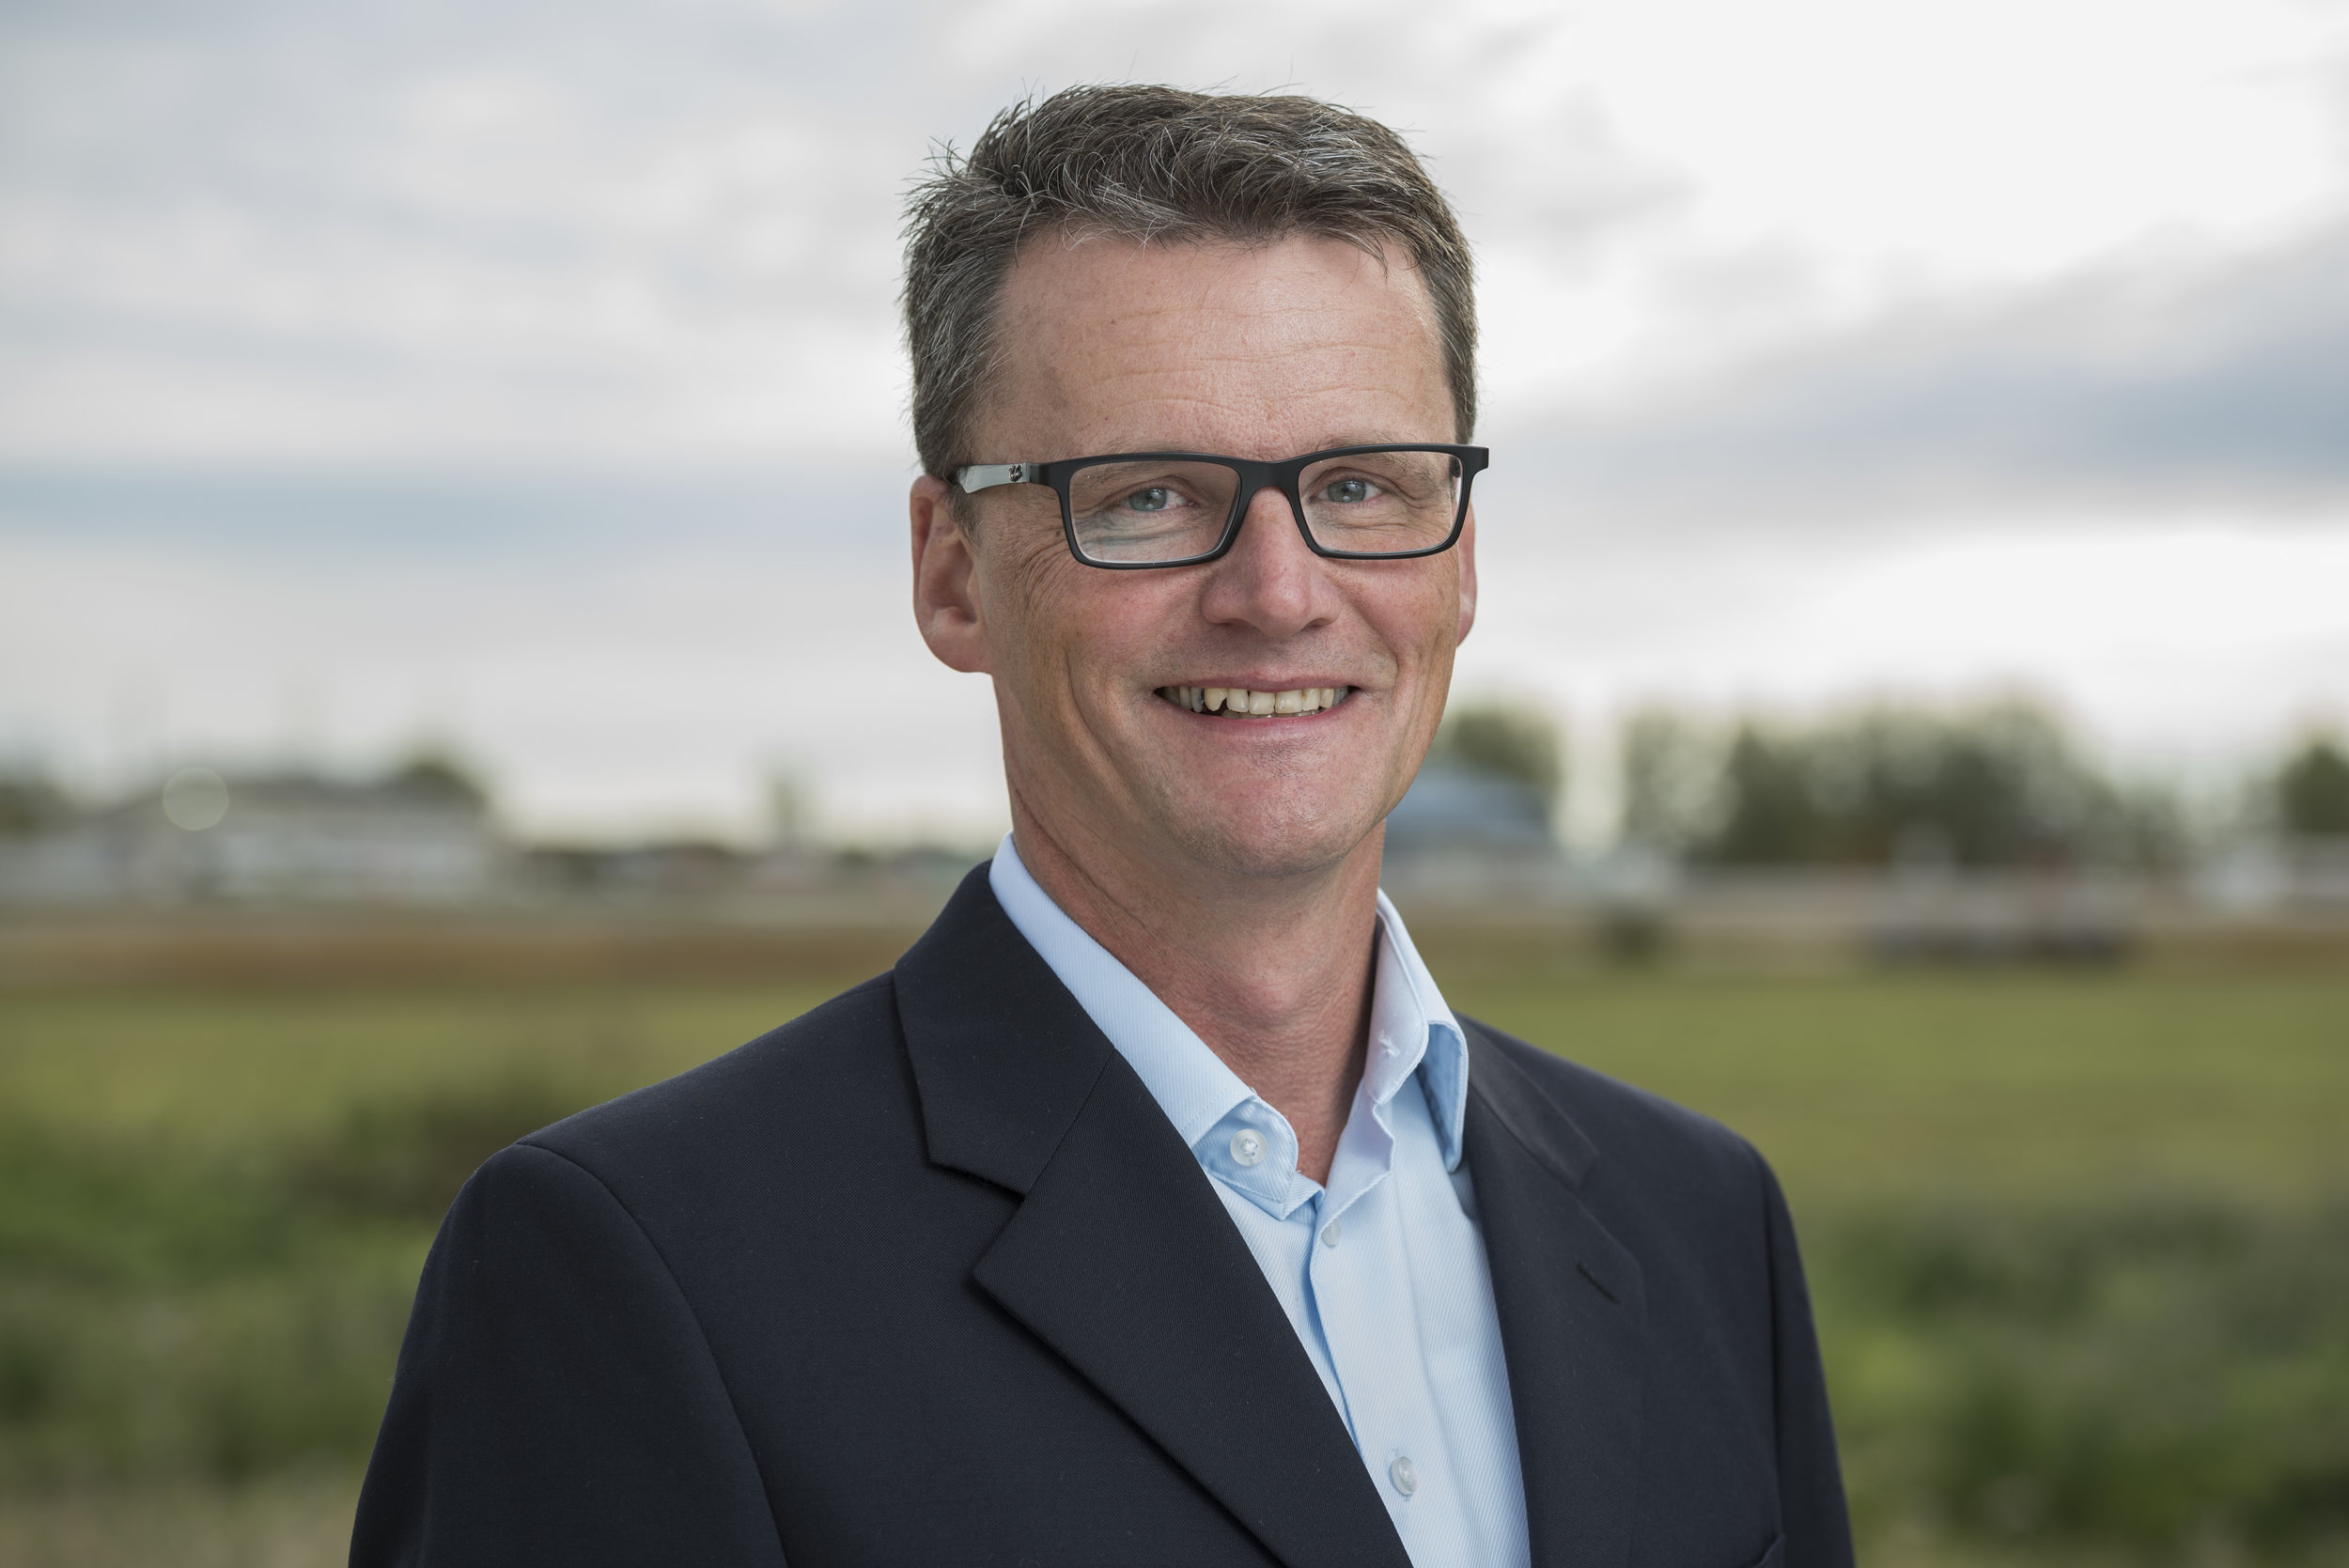 Martin Hildebrand - Chief Executive Officer